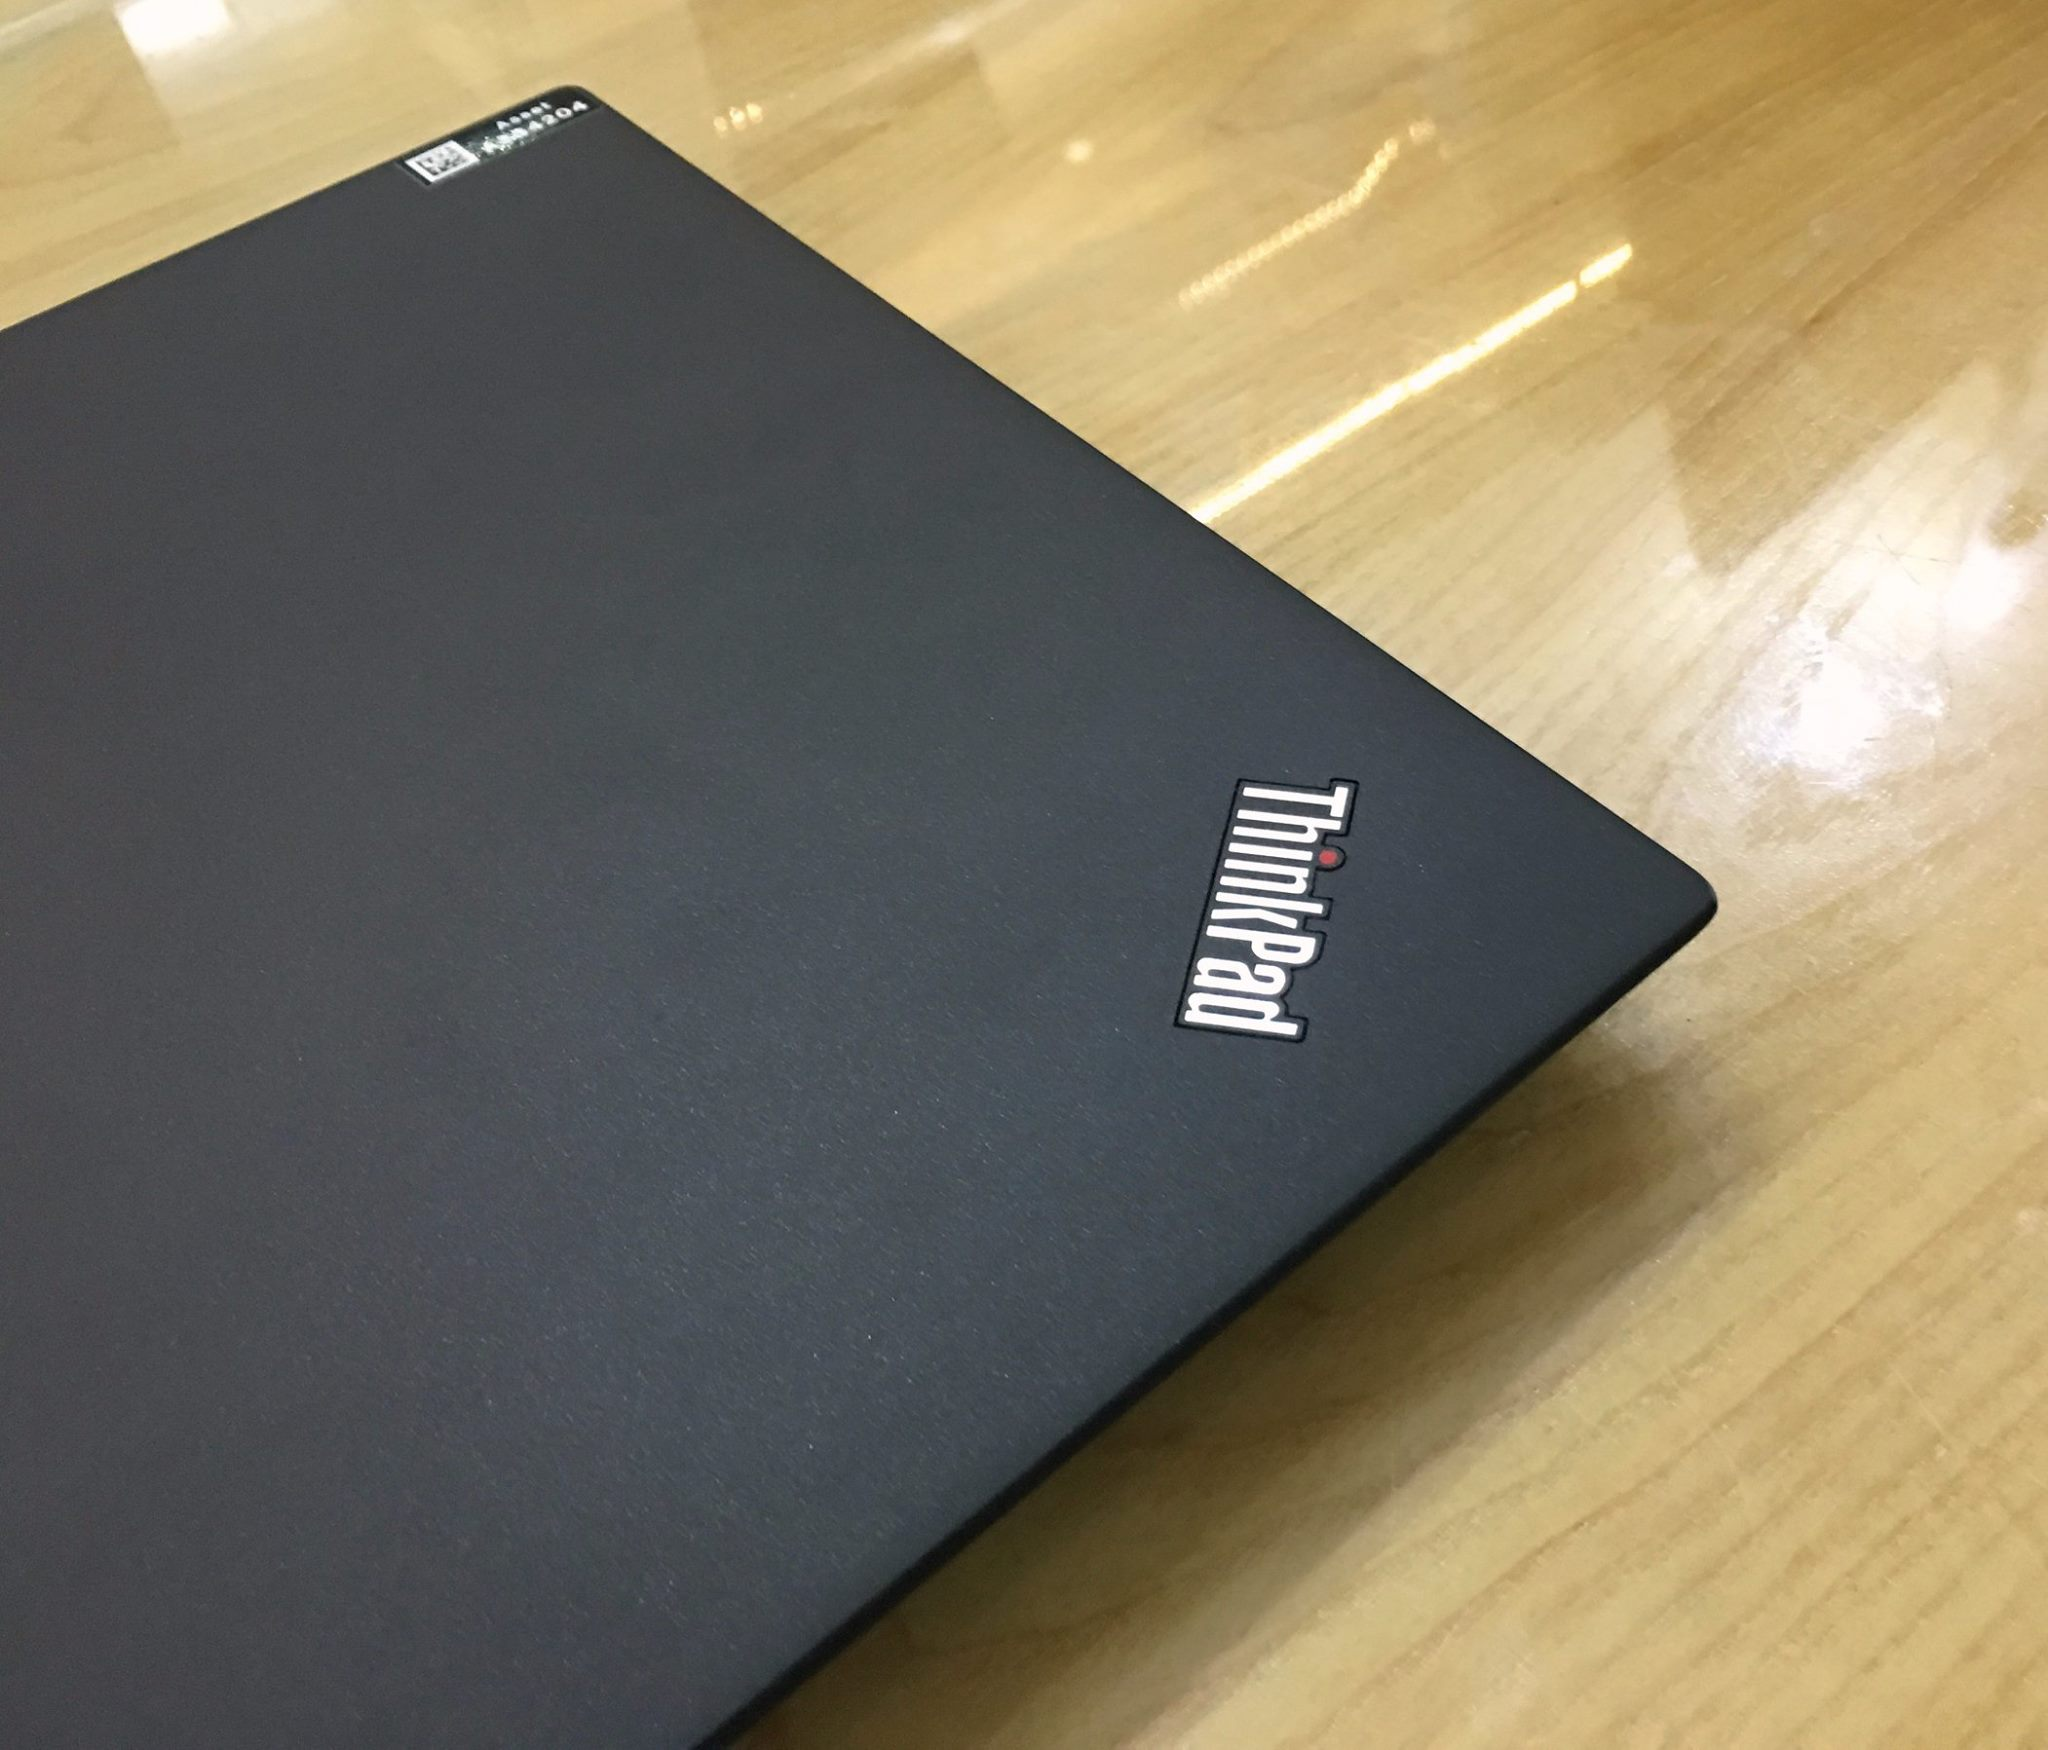 Laptop Lenovo Thinkpad T460S-9.jpg